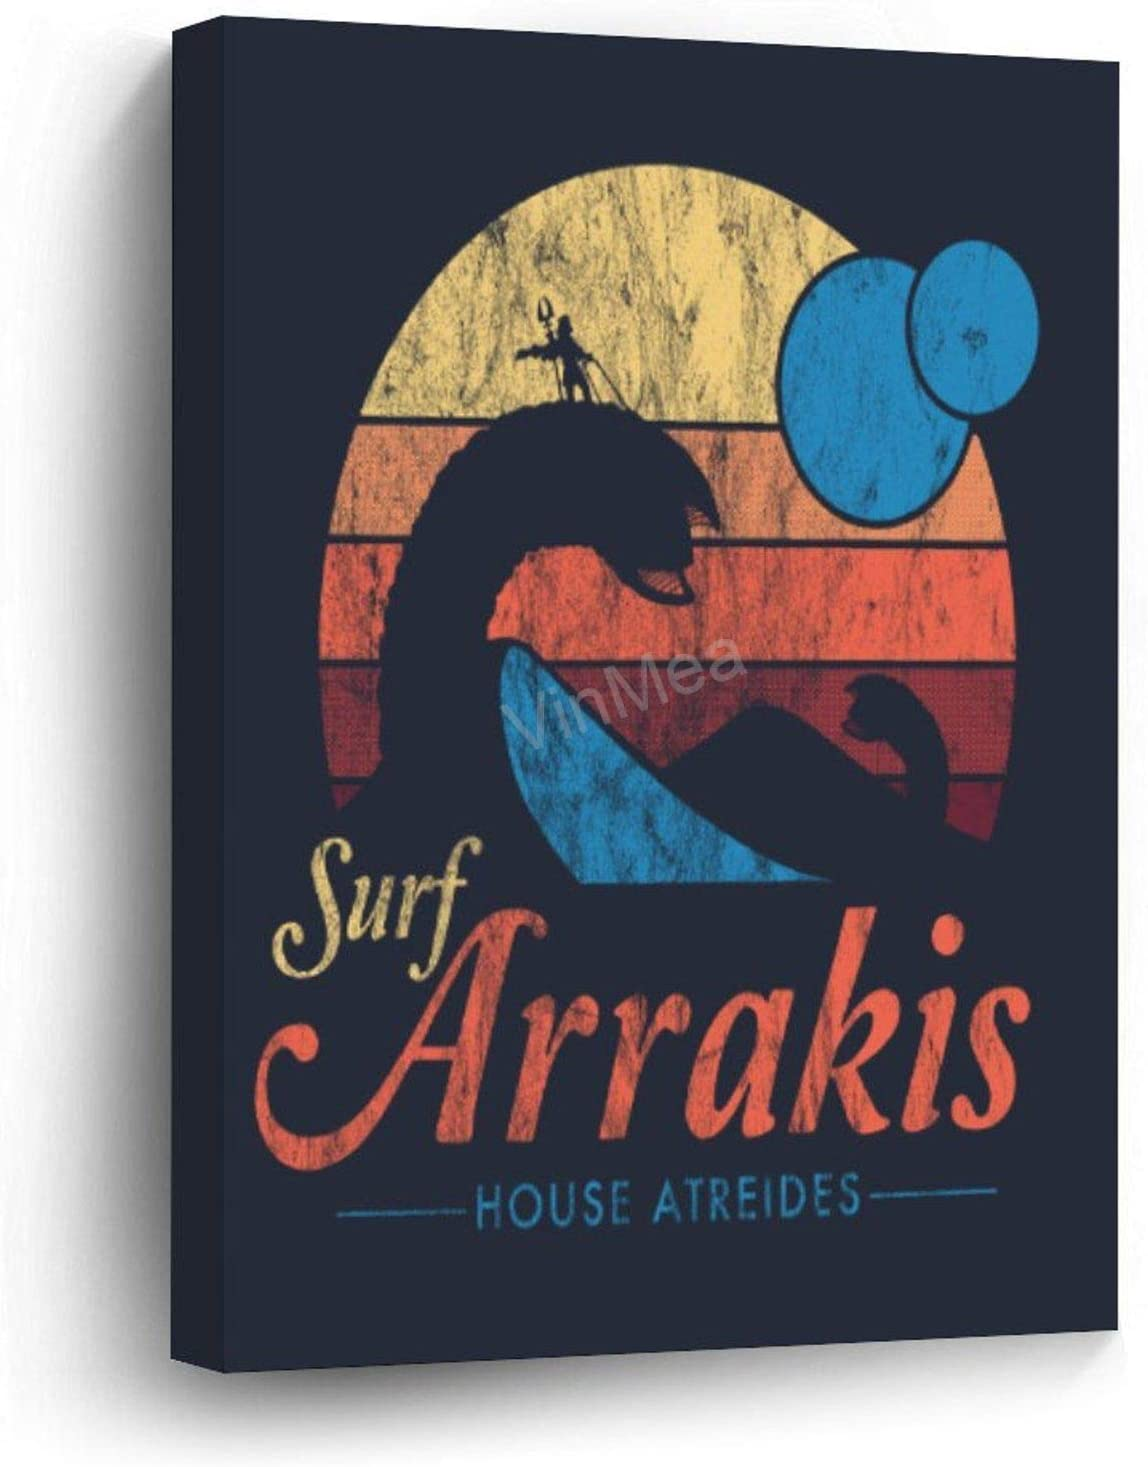 "Funny Pictures Wrapped Canvas Visit Arrakis - Vintage Distressed Surf - Dune - Sci Fi Wall Art Decor Wooden Framed 12"" X 16"""